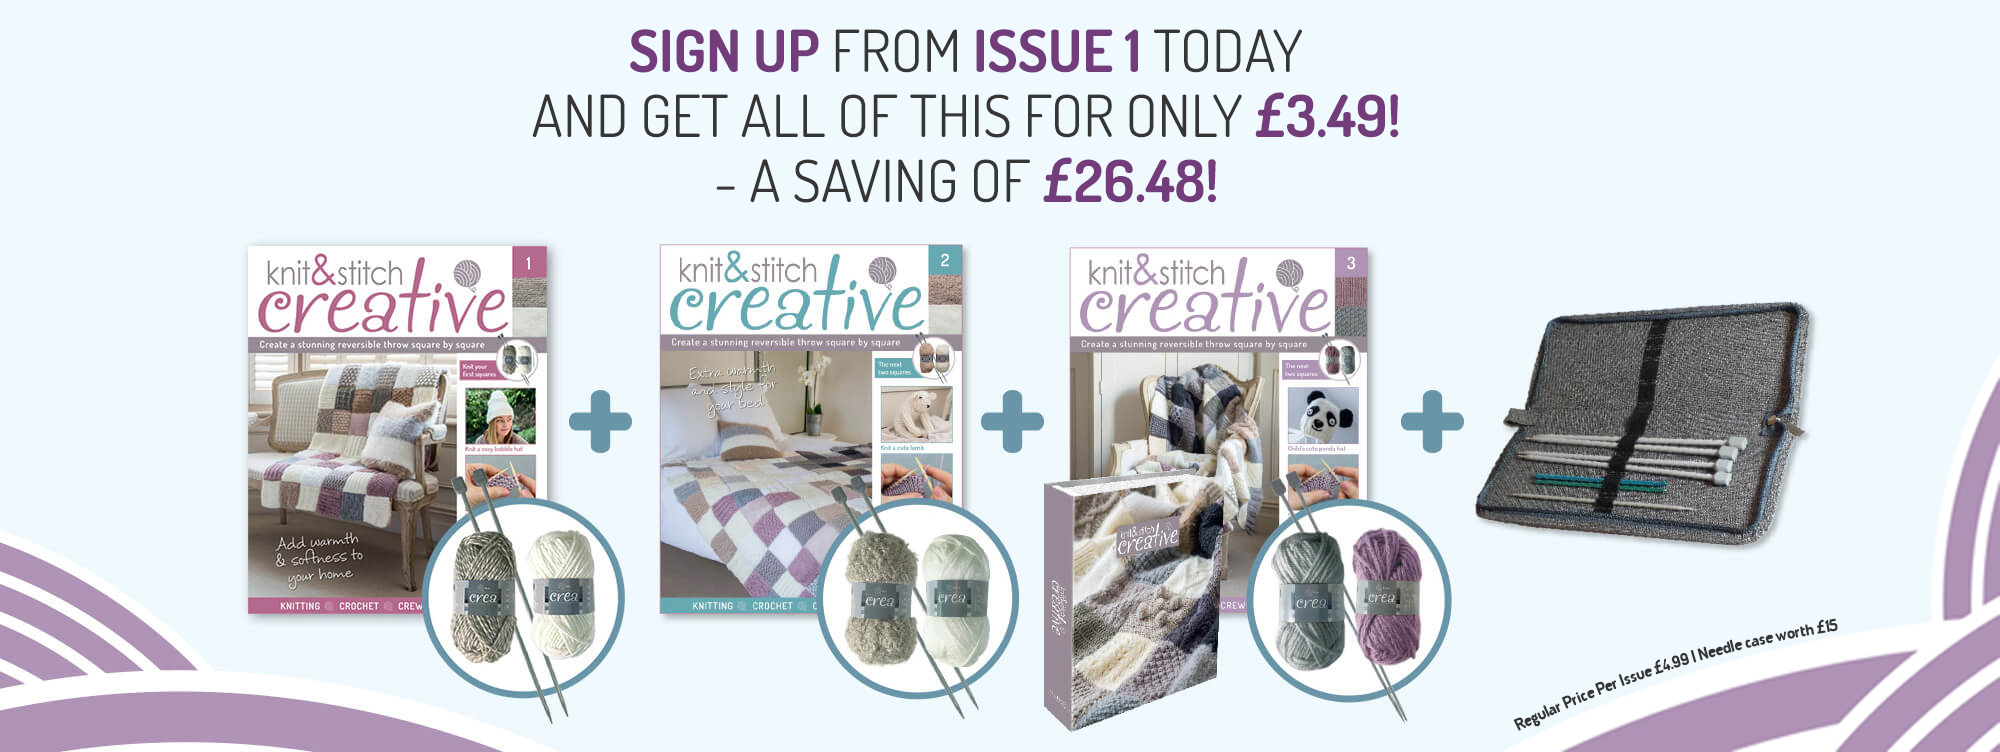 Sign up from issue 1 today and get all of this for only £2.99